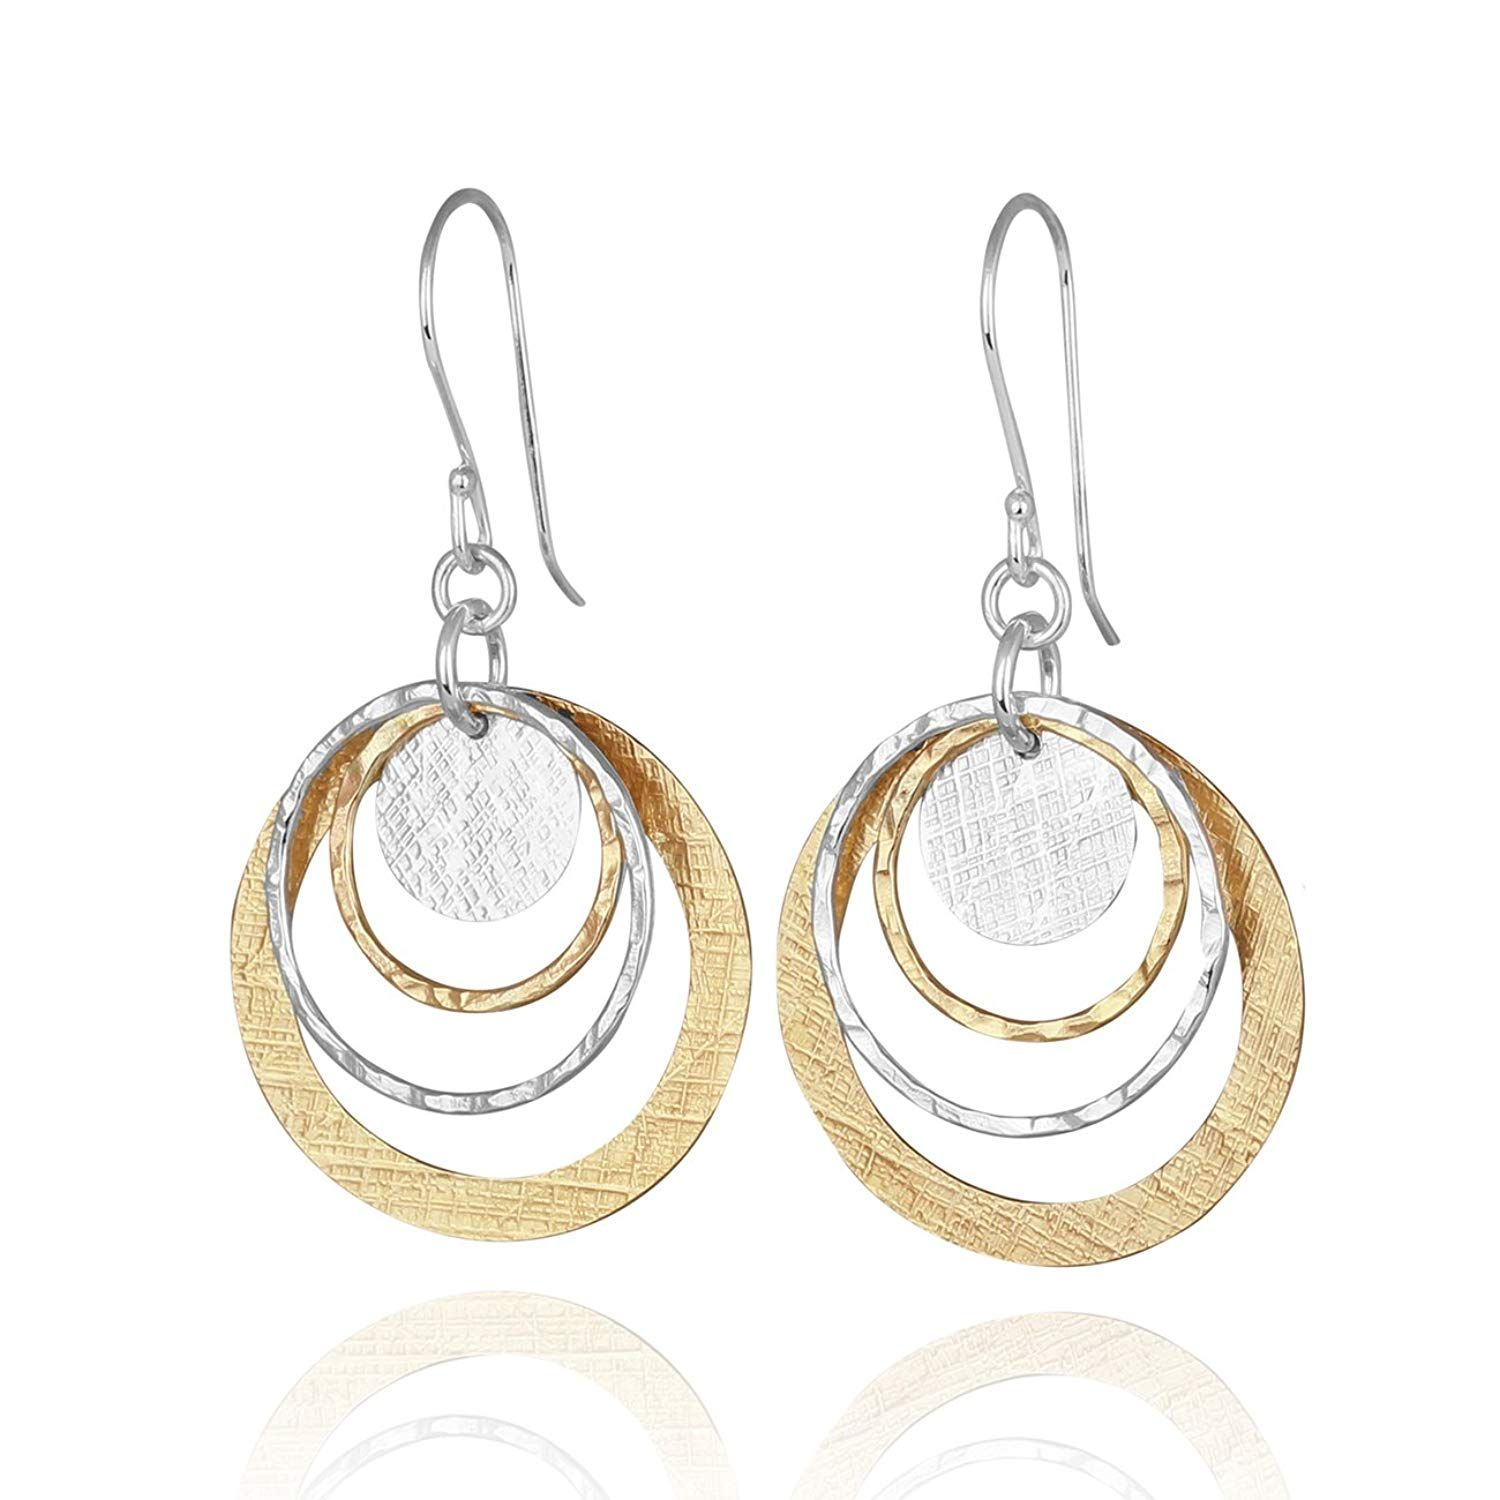 Two Tone 925 Sterling Silver /& 14k Gold-Filled Circle /& Disc Dangle Earrings